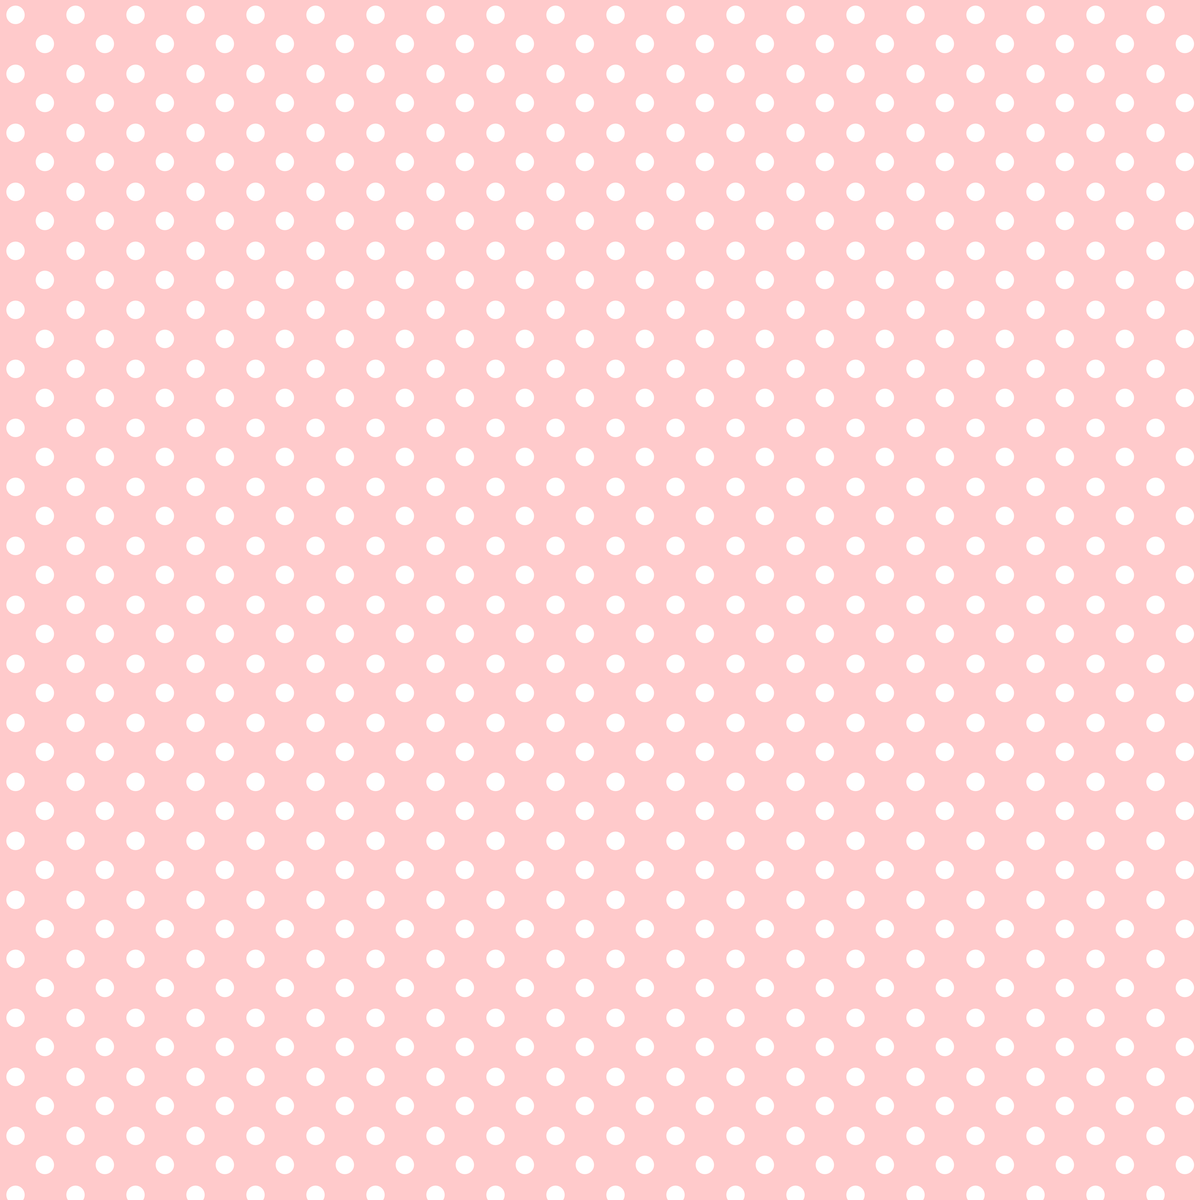 pink polka dot paper Polka dot free vector art is available on vecteezy download free polka dot backgrounds, dot vectors, polka dot patterns, & more under creative commons.